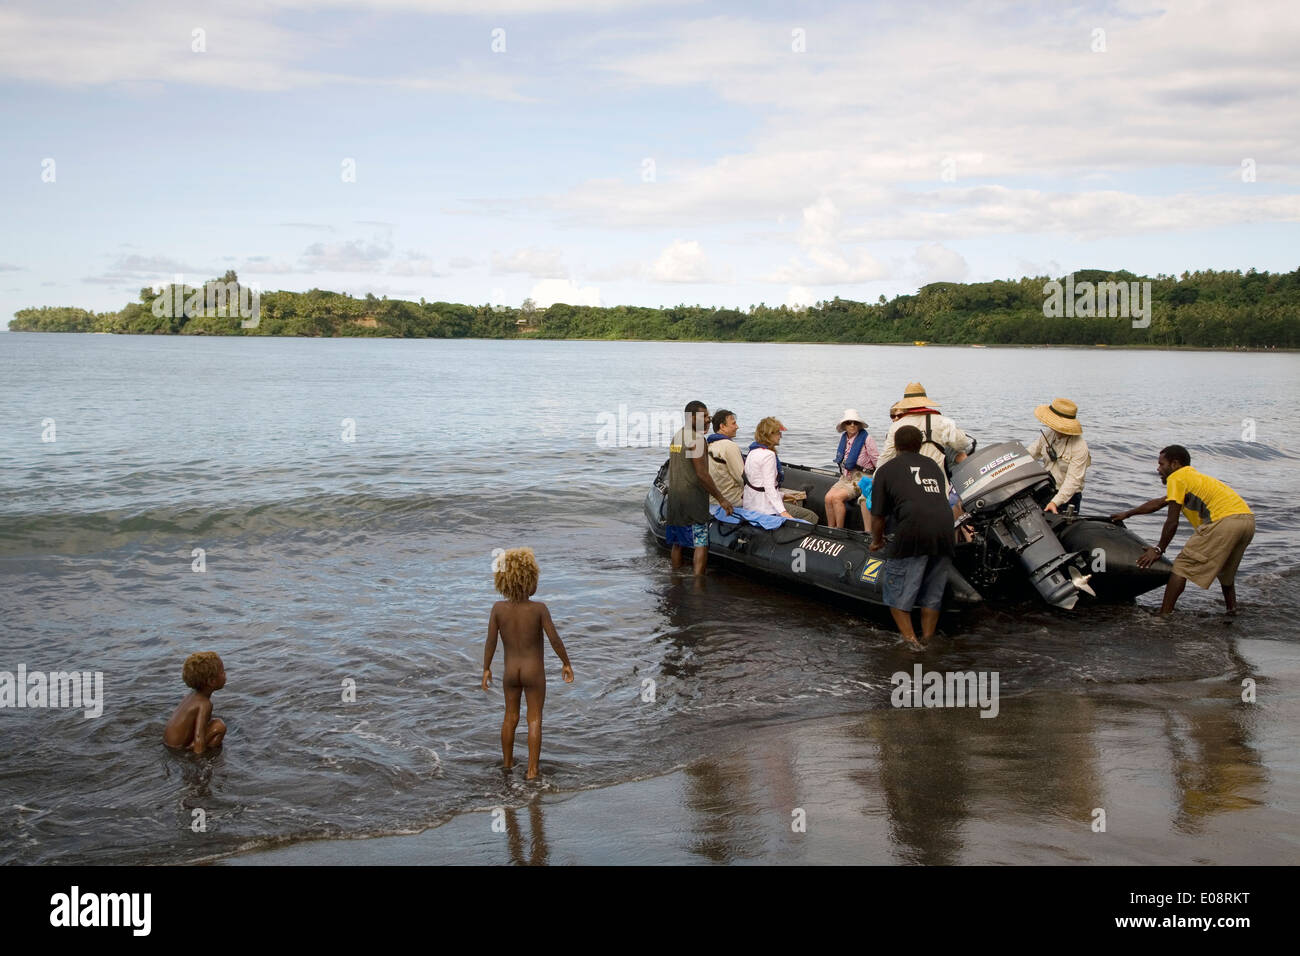 Orion guests arrive ashore at Tanna Island via Zodiac to the greeting of Chief Philemon (green sulu), Vanuatu, South Pacific - Stock Image